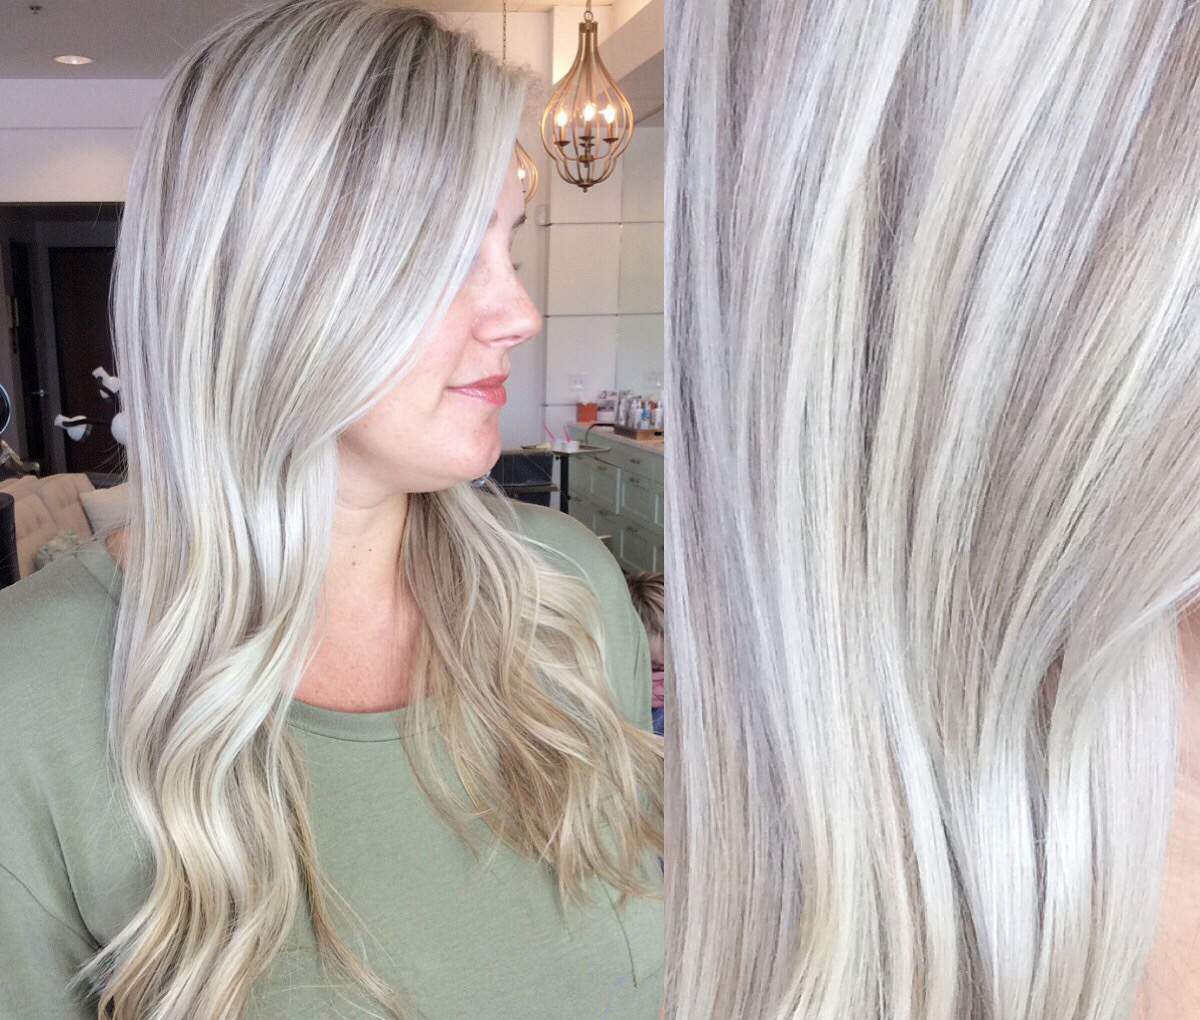 Even ashier than both photos above. This client has level 7 ash lowlights with heavy highlights. To acheive this tone: ask your stylist to over compensate and make your color as ashy as possible, almost on the grey side.